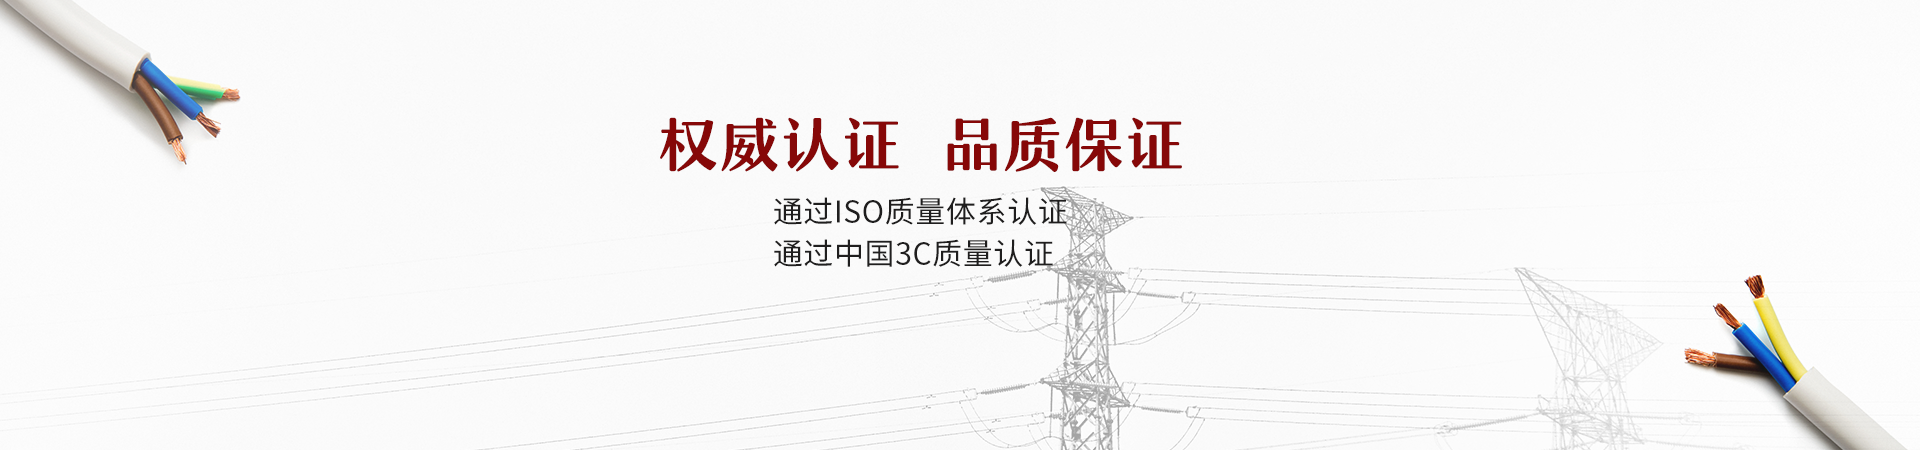 http://www.bochuangdq.cn/data/upload/202010/20201026113357_458.png